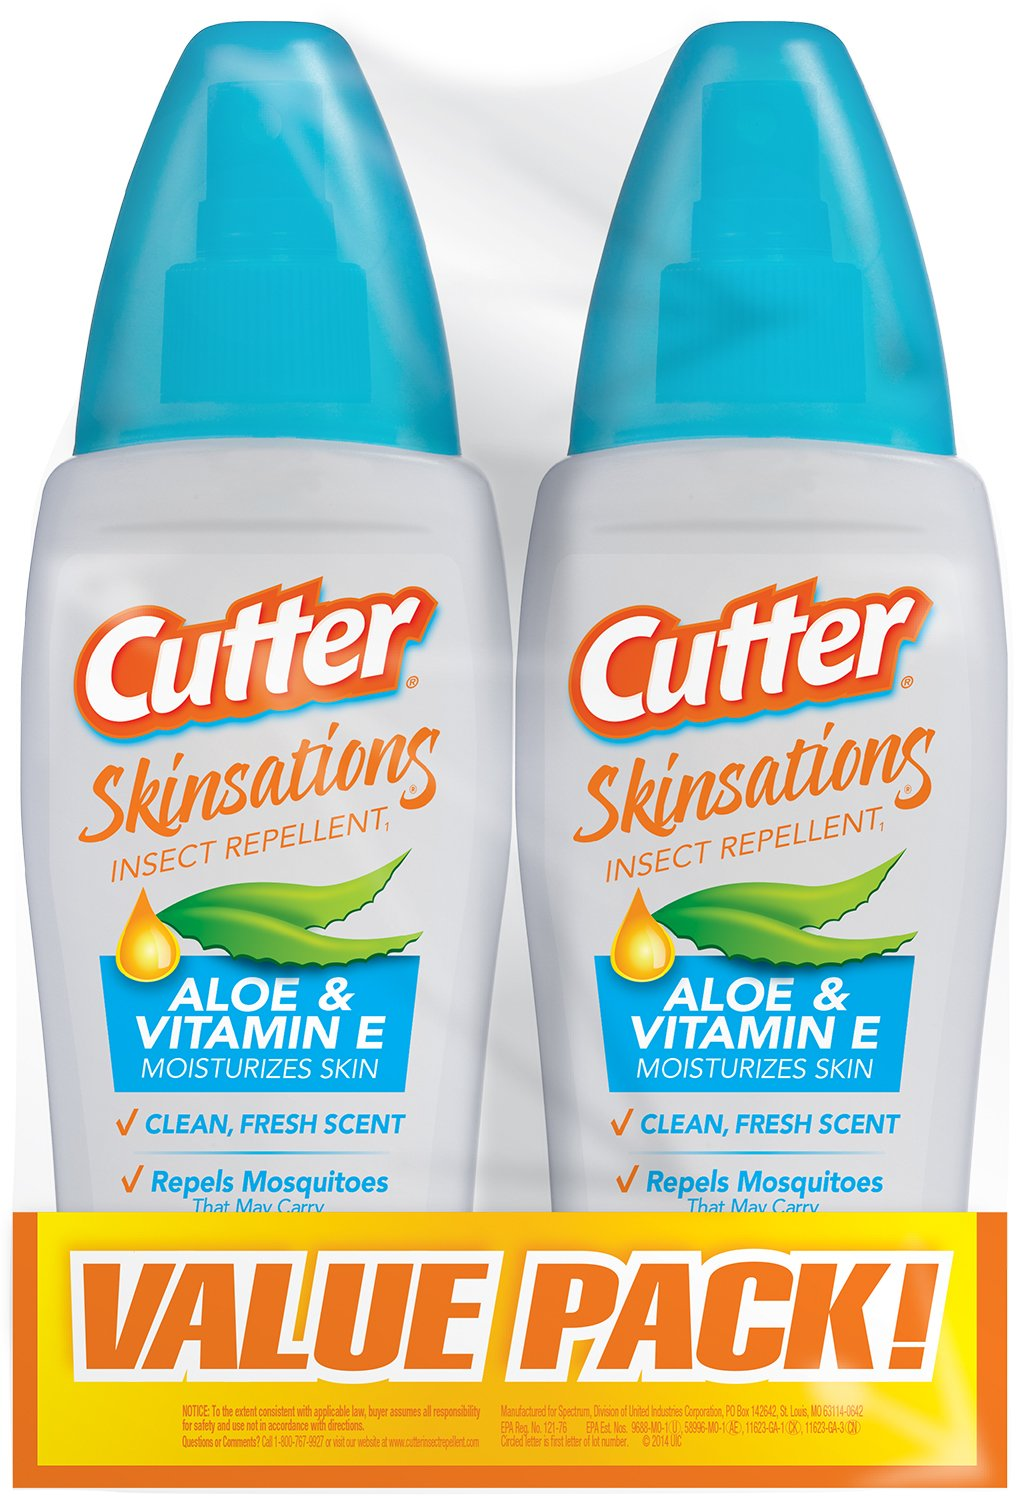 Cutter 54012 Skinsations 2 to 6-Ounce Insect Repellent Pump Spray, Case Pack of 2